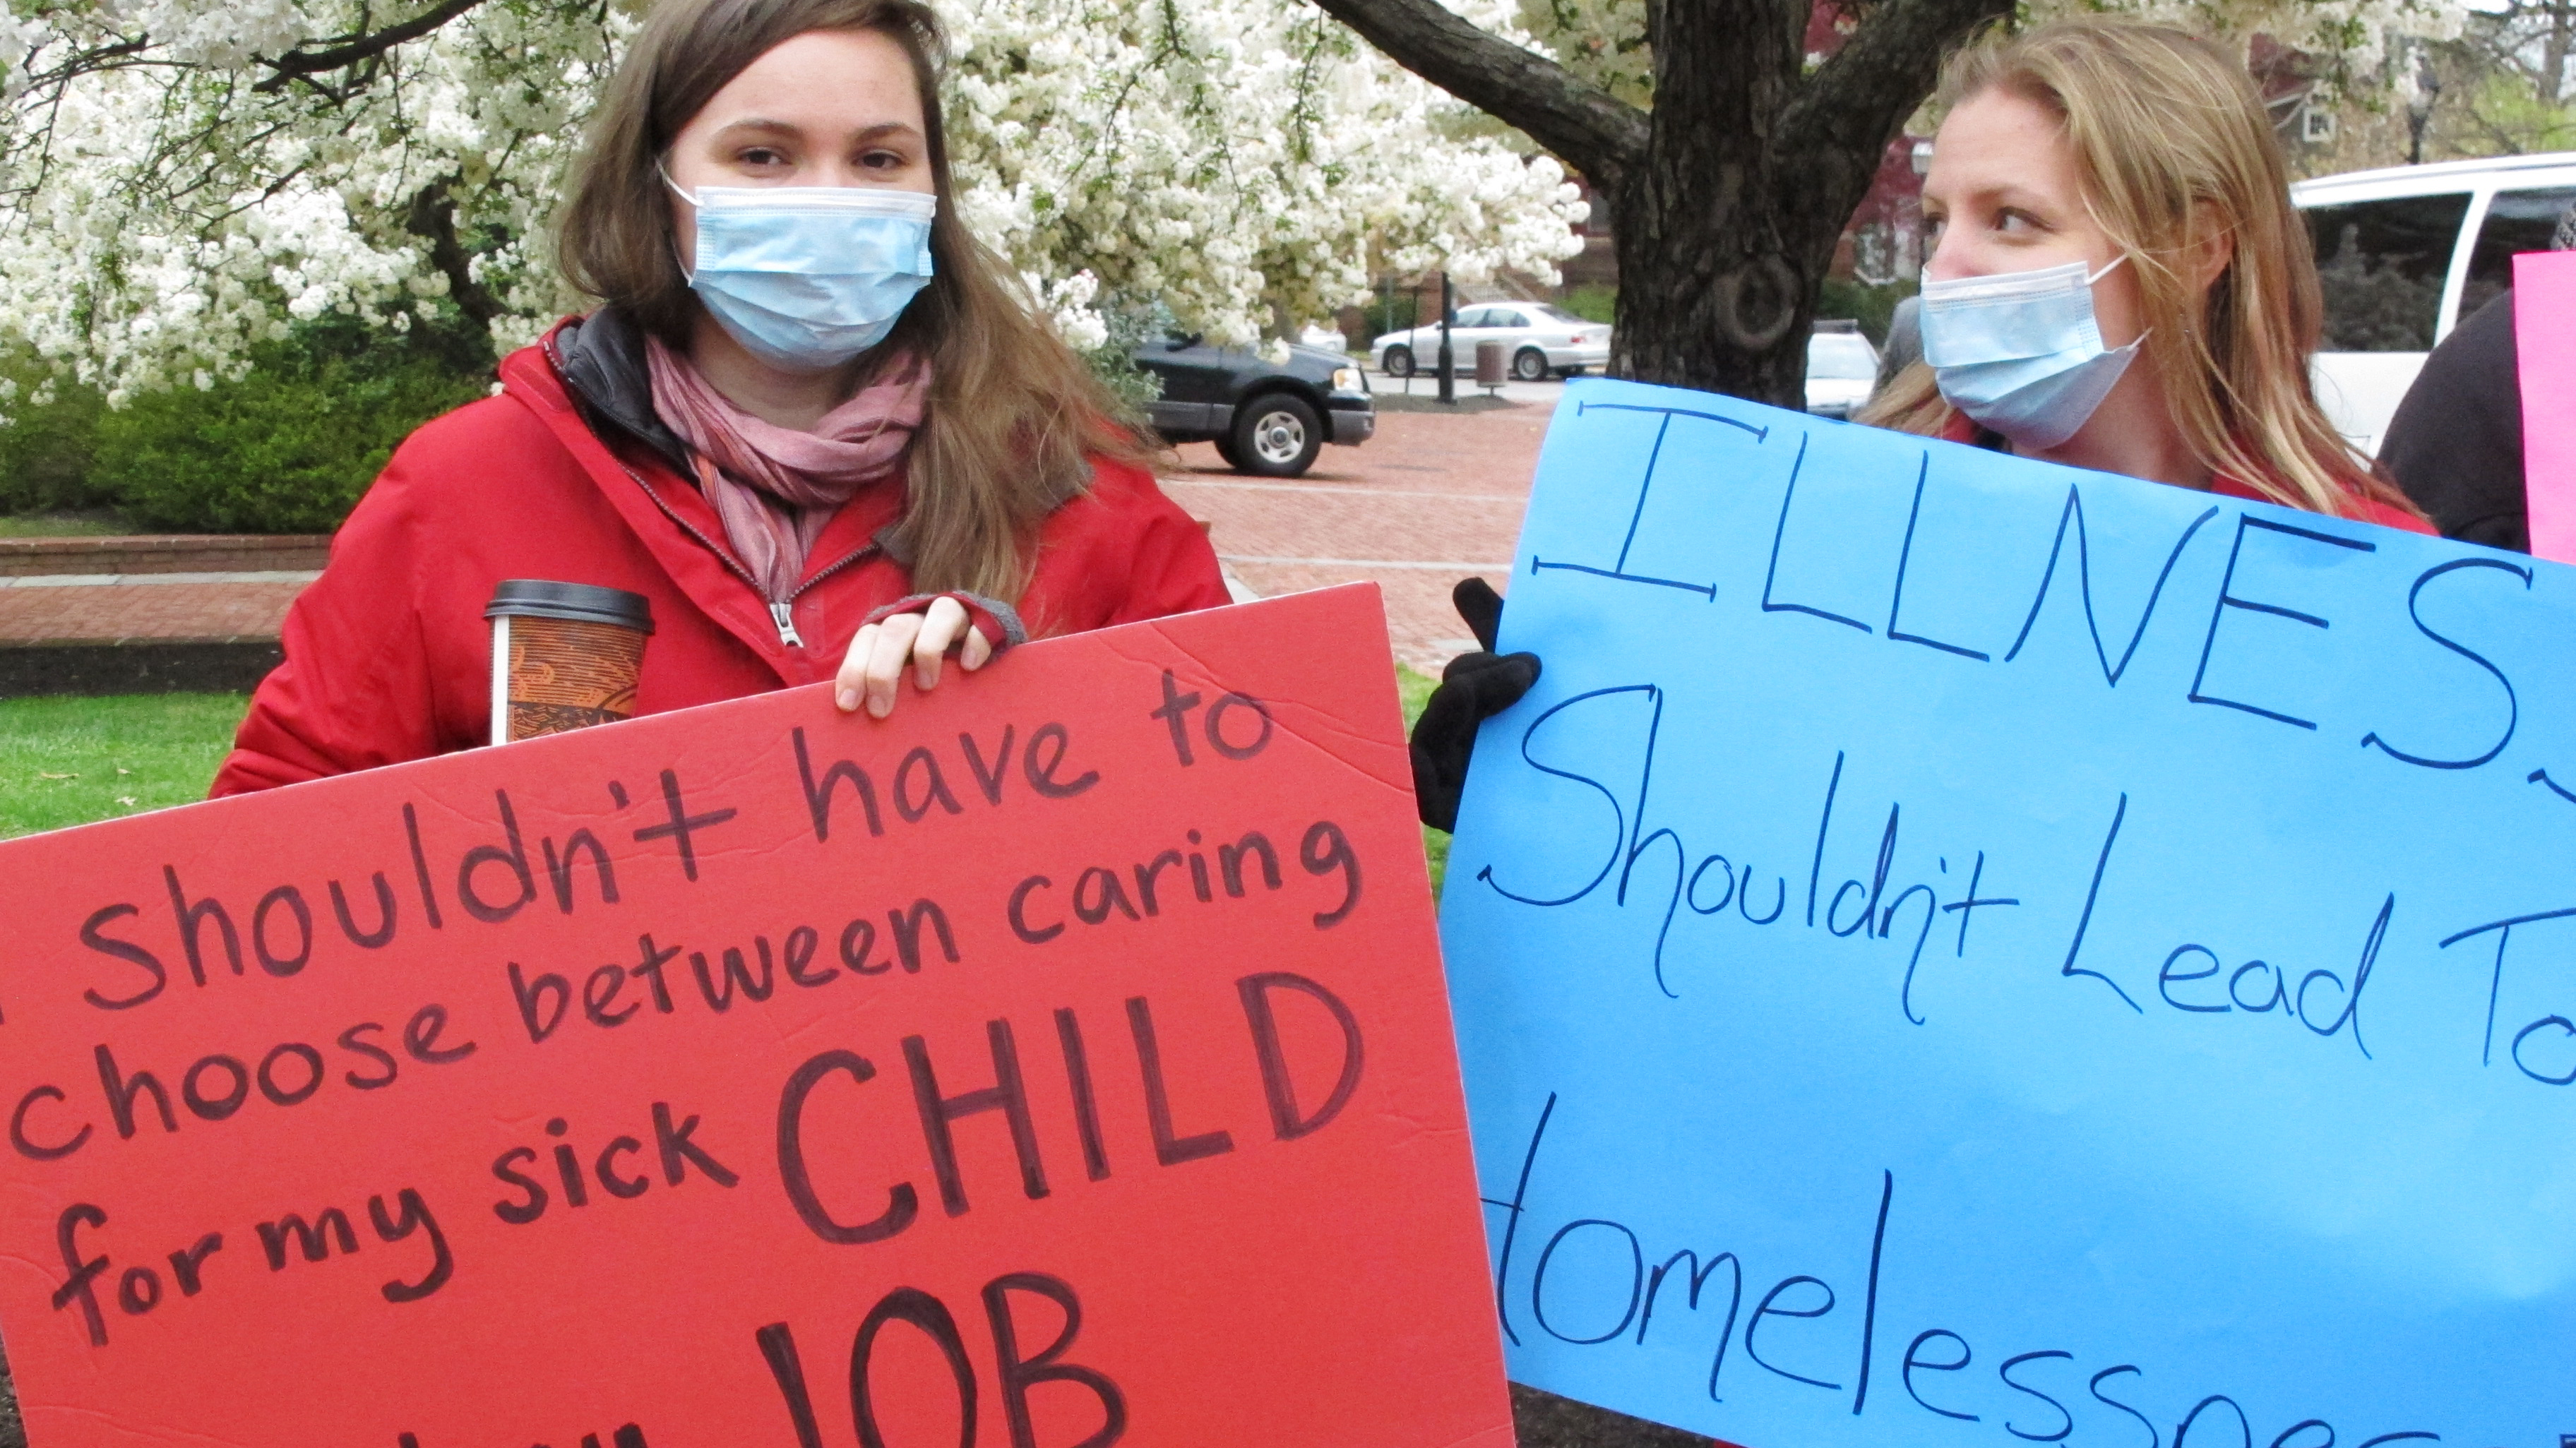 Sandy Robson (left) and Crystal Hall rally for legislation for paid sick leave on April 11, 2016, in Annapolis, Md. Under a bill recently sent to Gov. Larry Hogan, businesses with 15 or more full-time employees would be required to allow workers to earn at least five paid sick days a year.